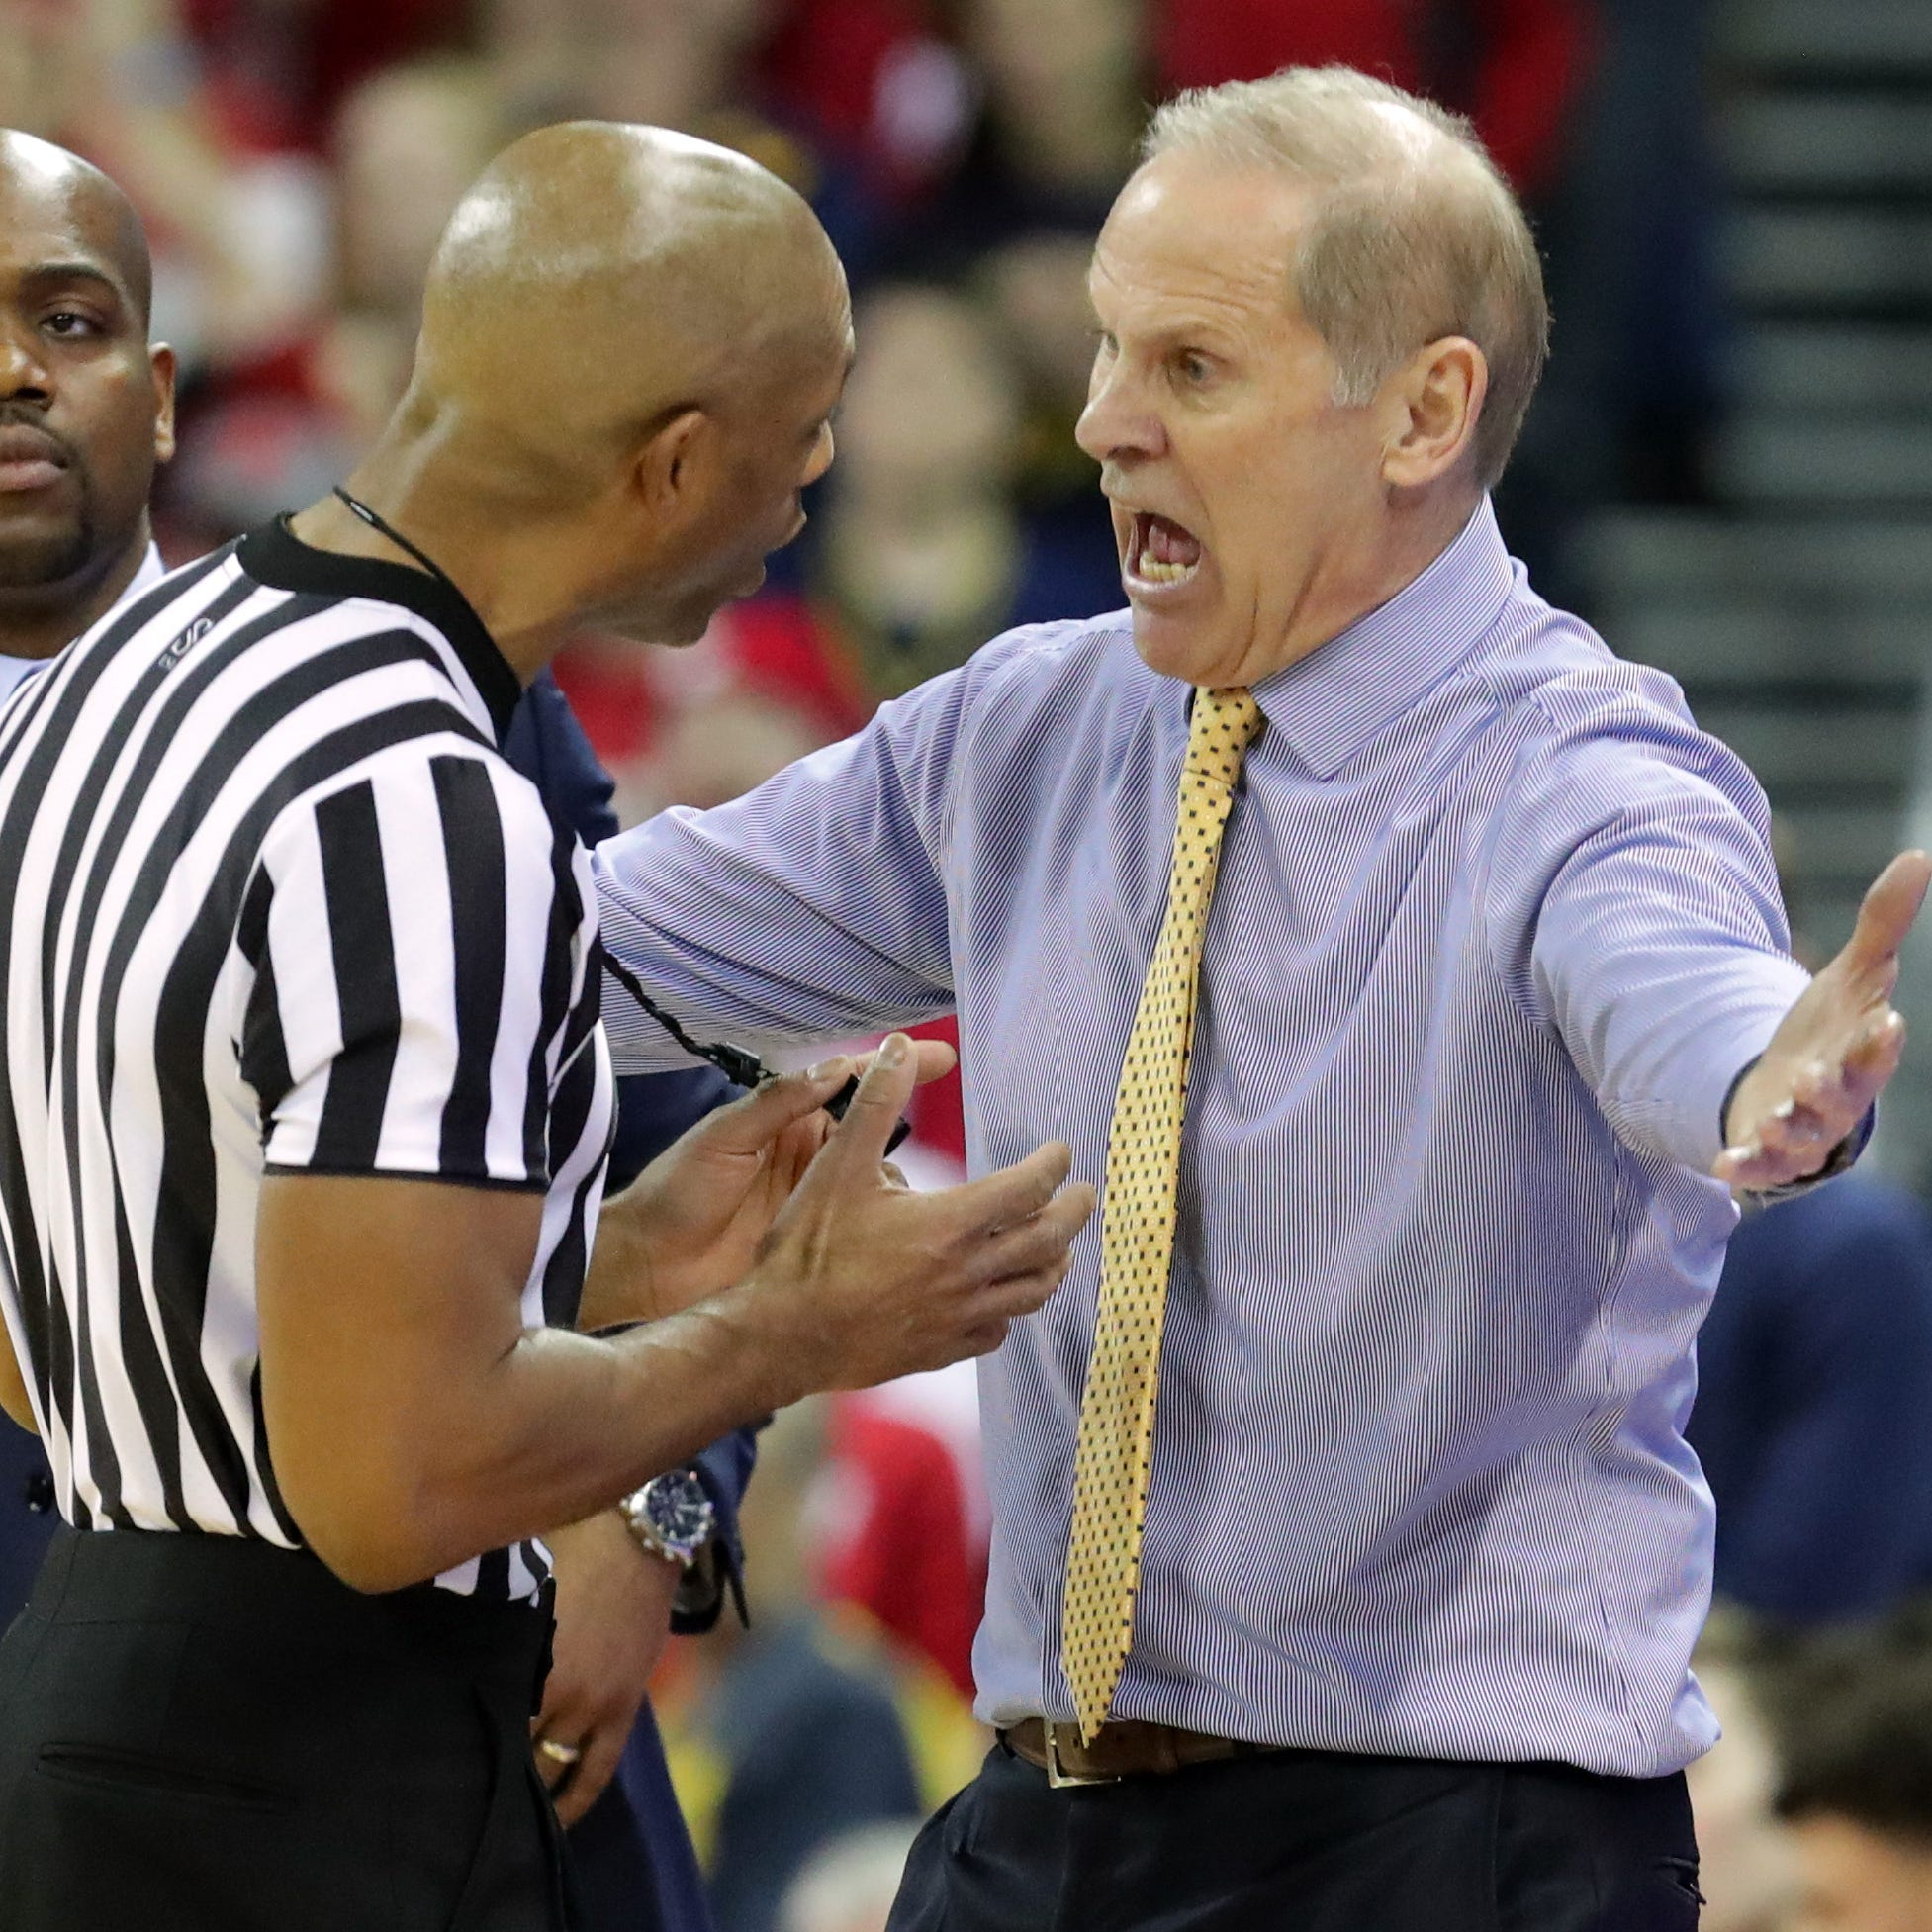 UW notes: Badgers benefit from Michigan's decision to intentionally foul Ethan Happ late